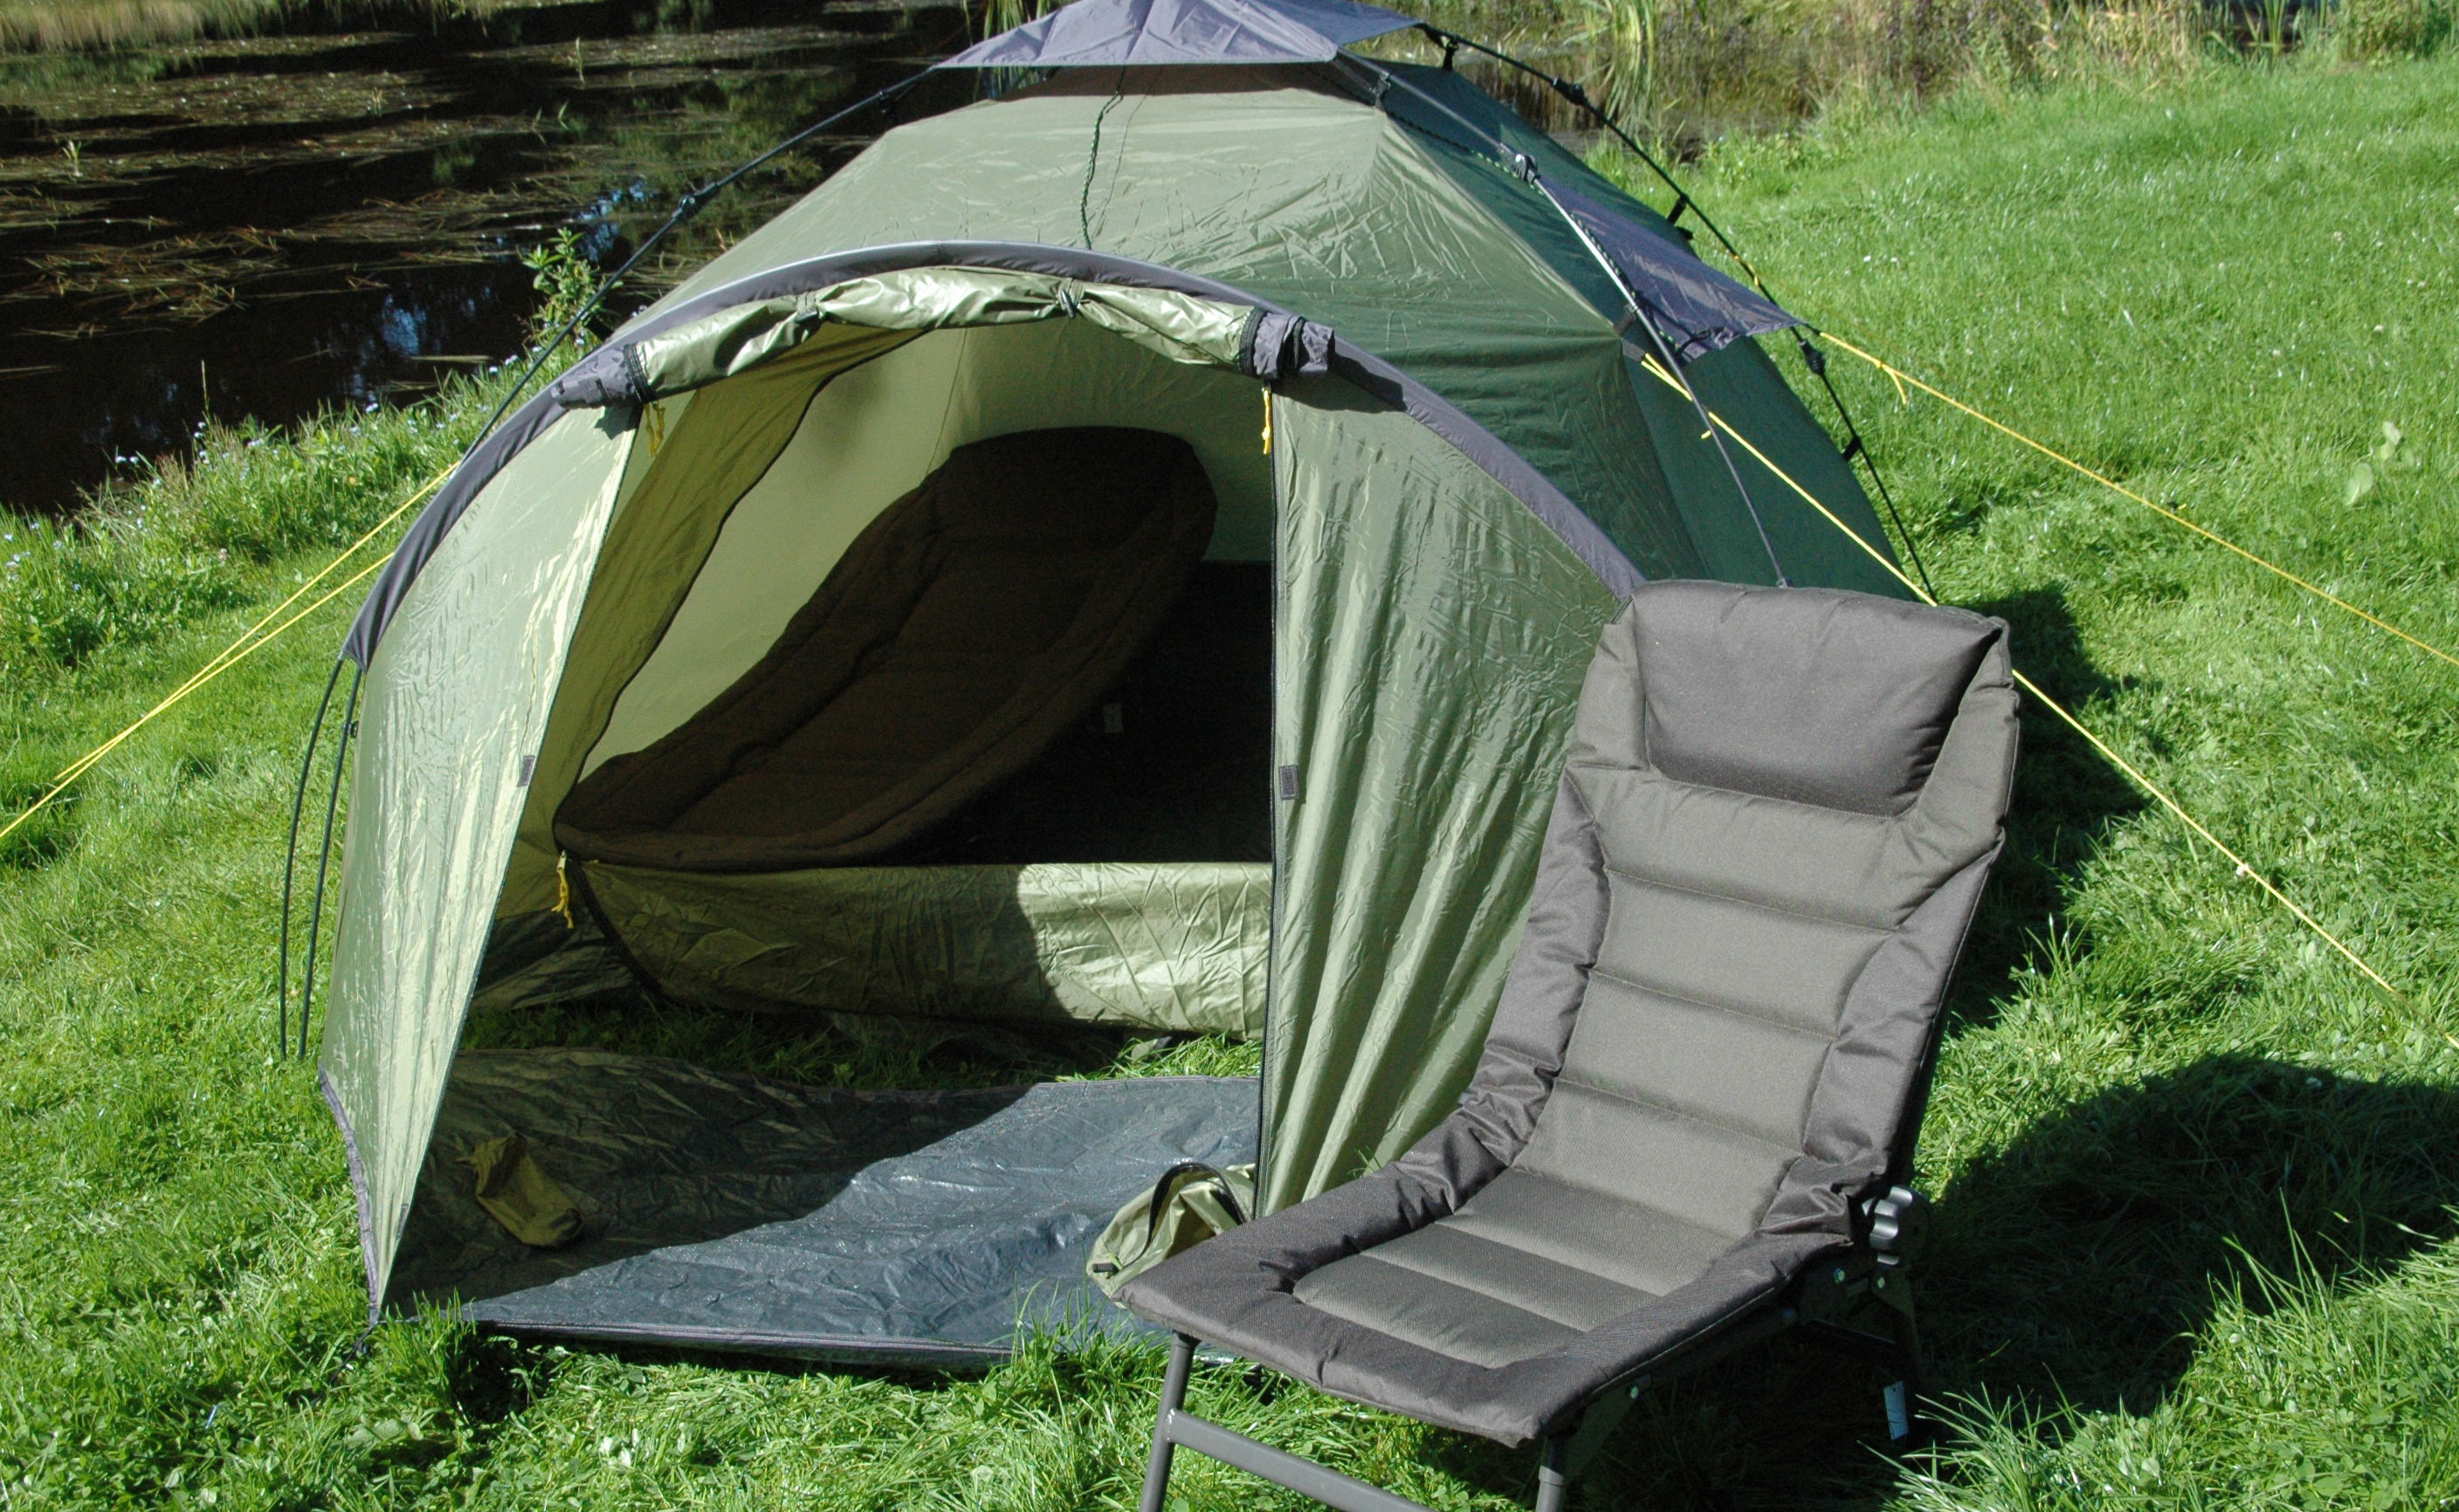 SCOTWILD EASY UP 2 SKIN BIVVY QUICK ERECT TENT RRP £149.99 & SCOTWILD EASY UP 2 SKIN BIVVY QUICK ERECT TENT RRP £149.99 ...